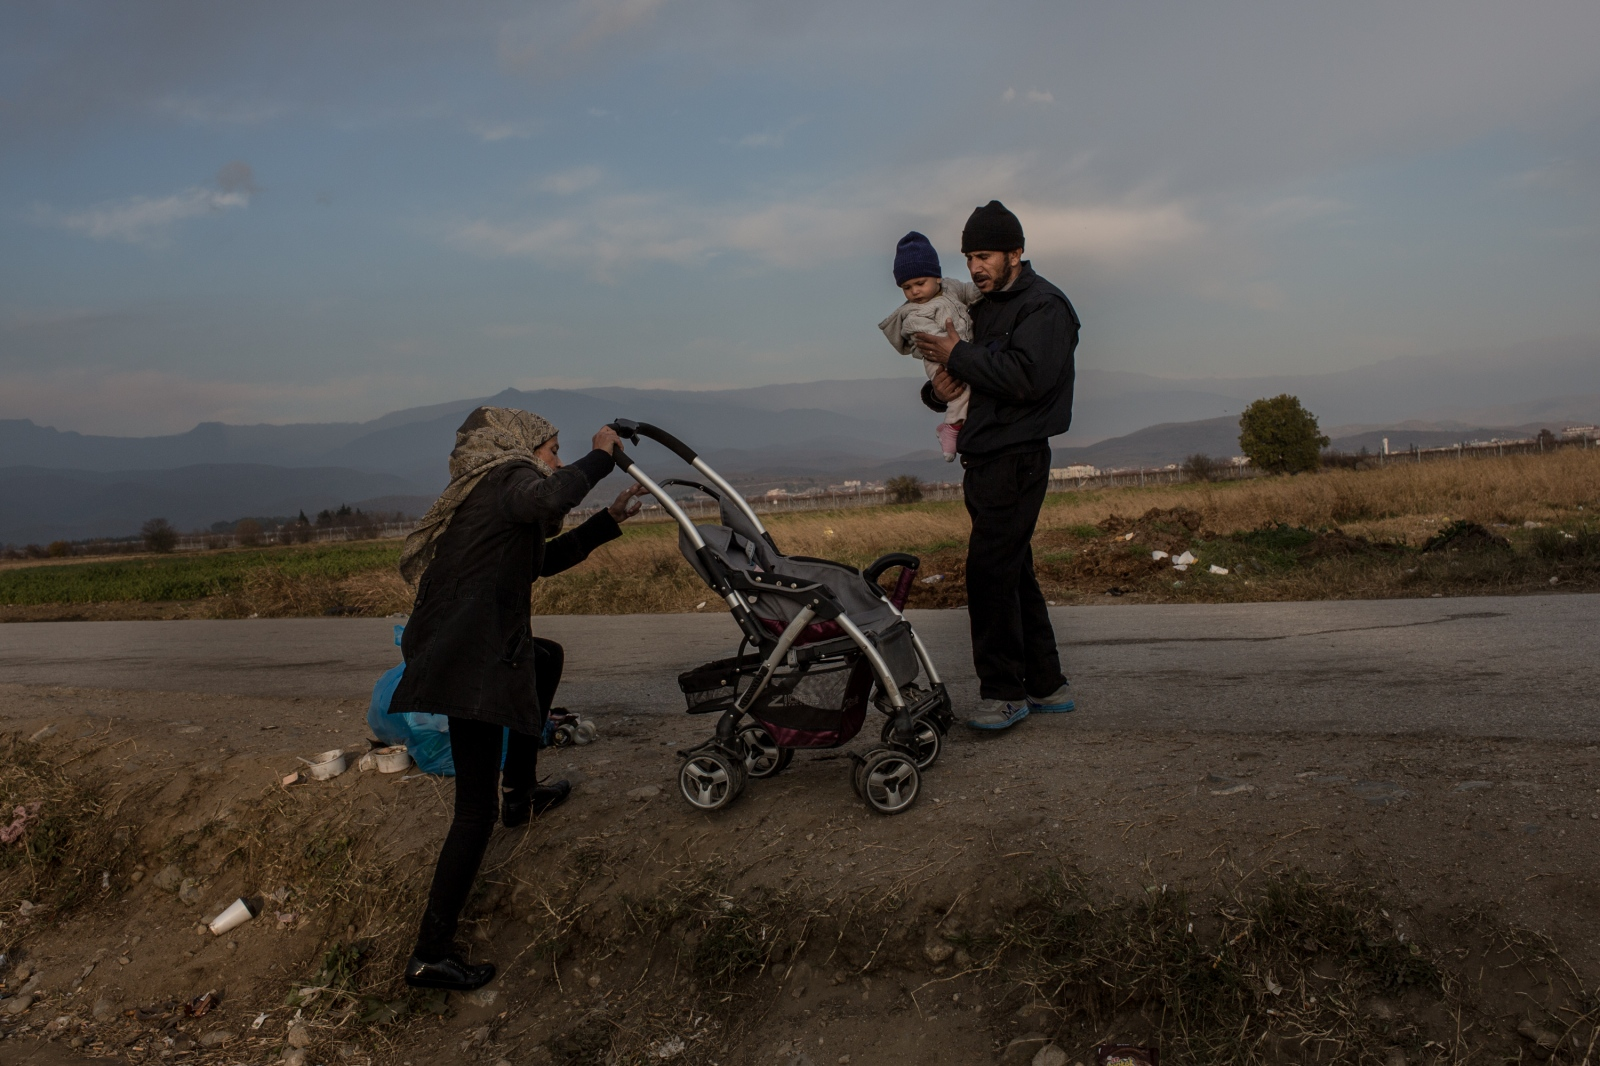 A family salvages a baby carriage near the border between Greece and the Former Yugoslav Republic of Macedonia on December 10, 2015. The previous day, a makeshift camp there with migrants from Morocco, Bangladesh, Iran, Pakistan, and elsewhere - which had been occupied for weeks - was cleared by the Greek police as Europe turns back those who are not specifically fleeing war. Refugees from Syria, Iraq, and Afghanistan are being permitted through to continue the route to Western Europe, whilst other nationalities are being directly transferred back to Athens.